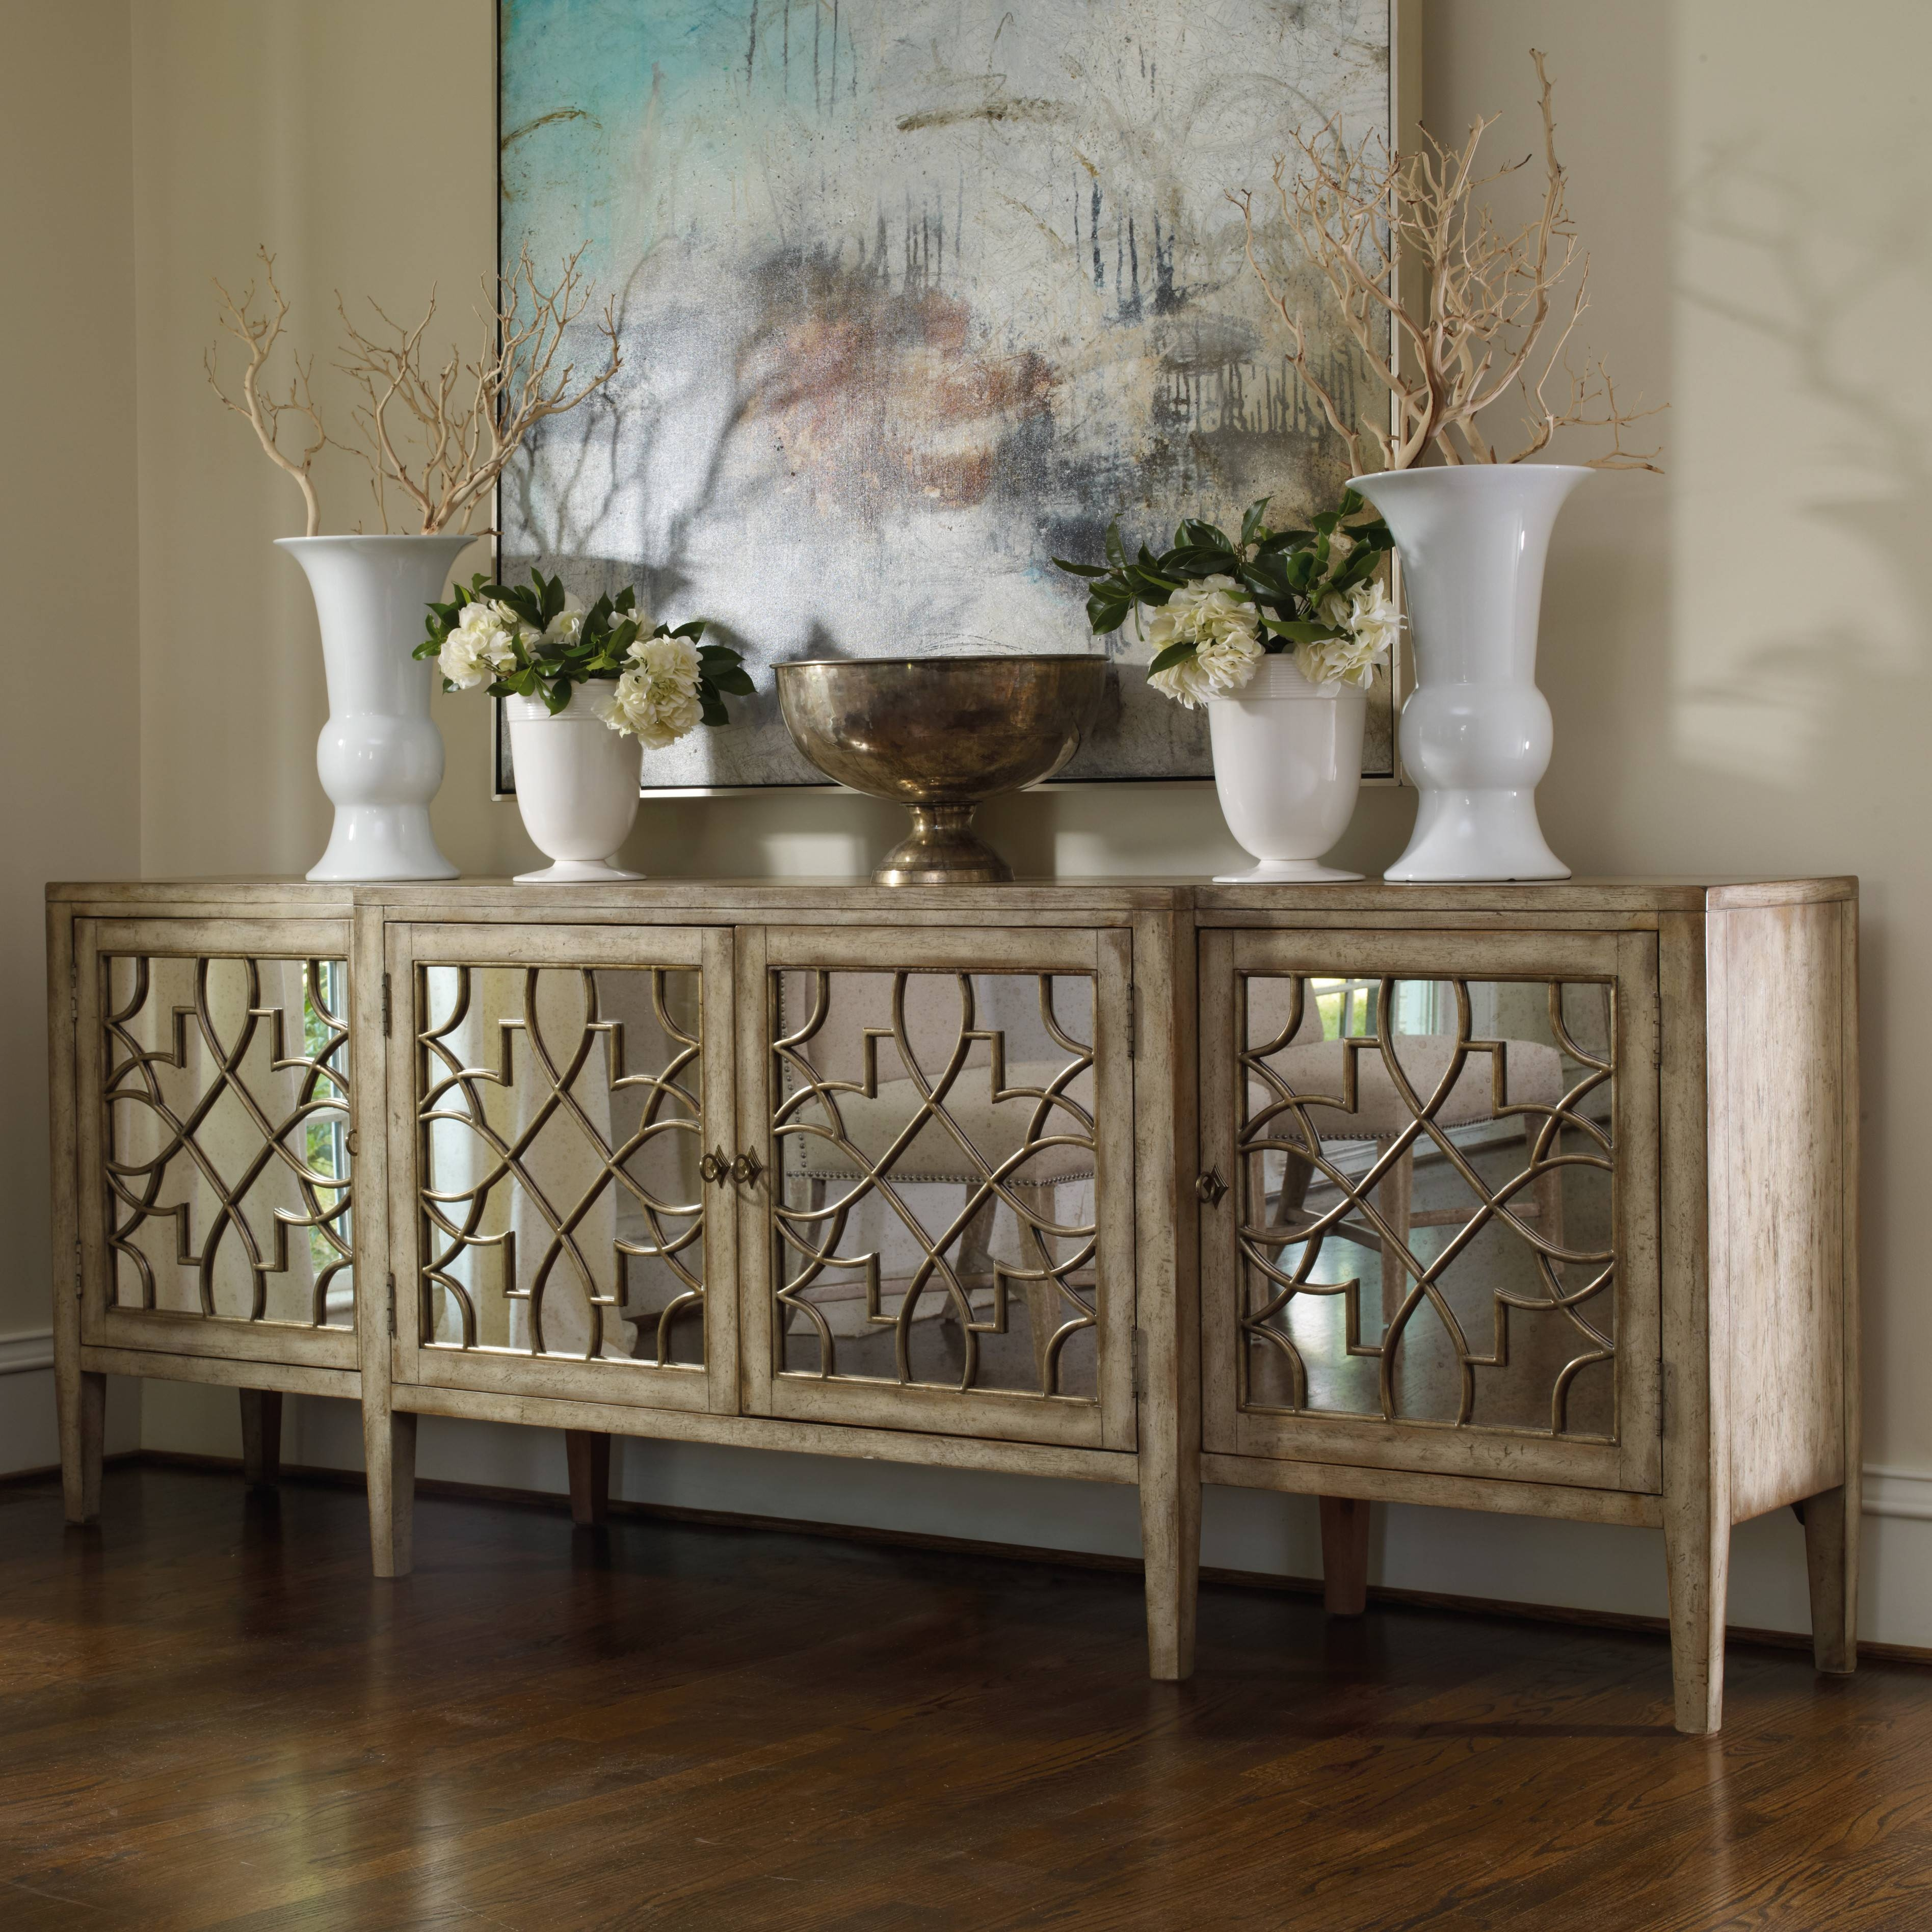 Mirrors Floor Wall Vanity Pier 1 Imports Eternal Mirror ~ Loversiq In White Distressed Finish Sideboards (#8 of 15)